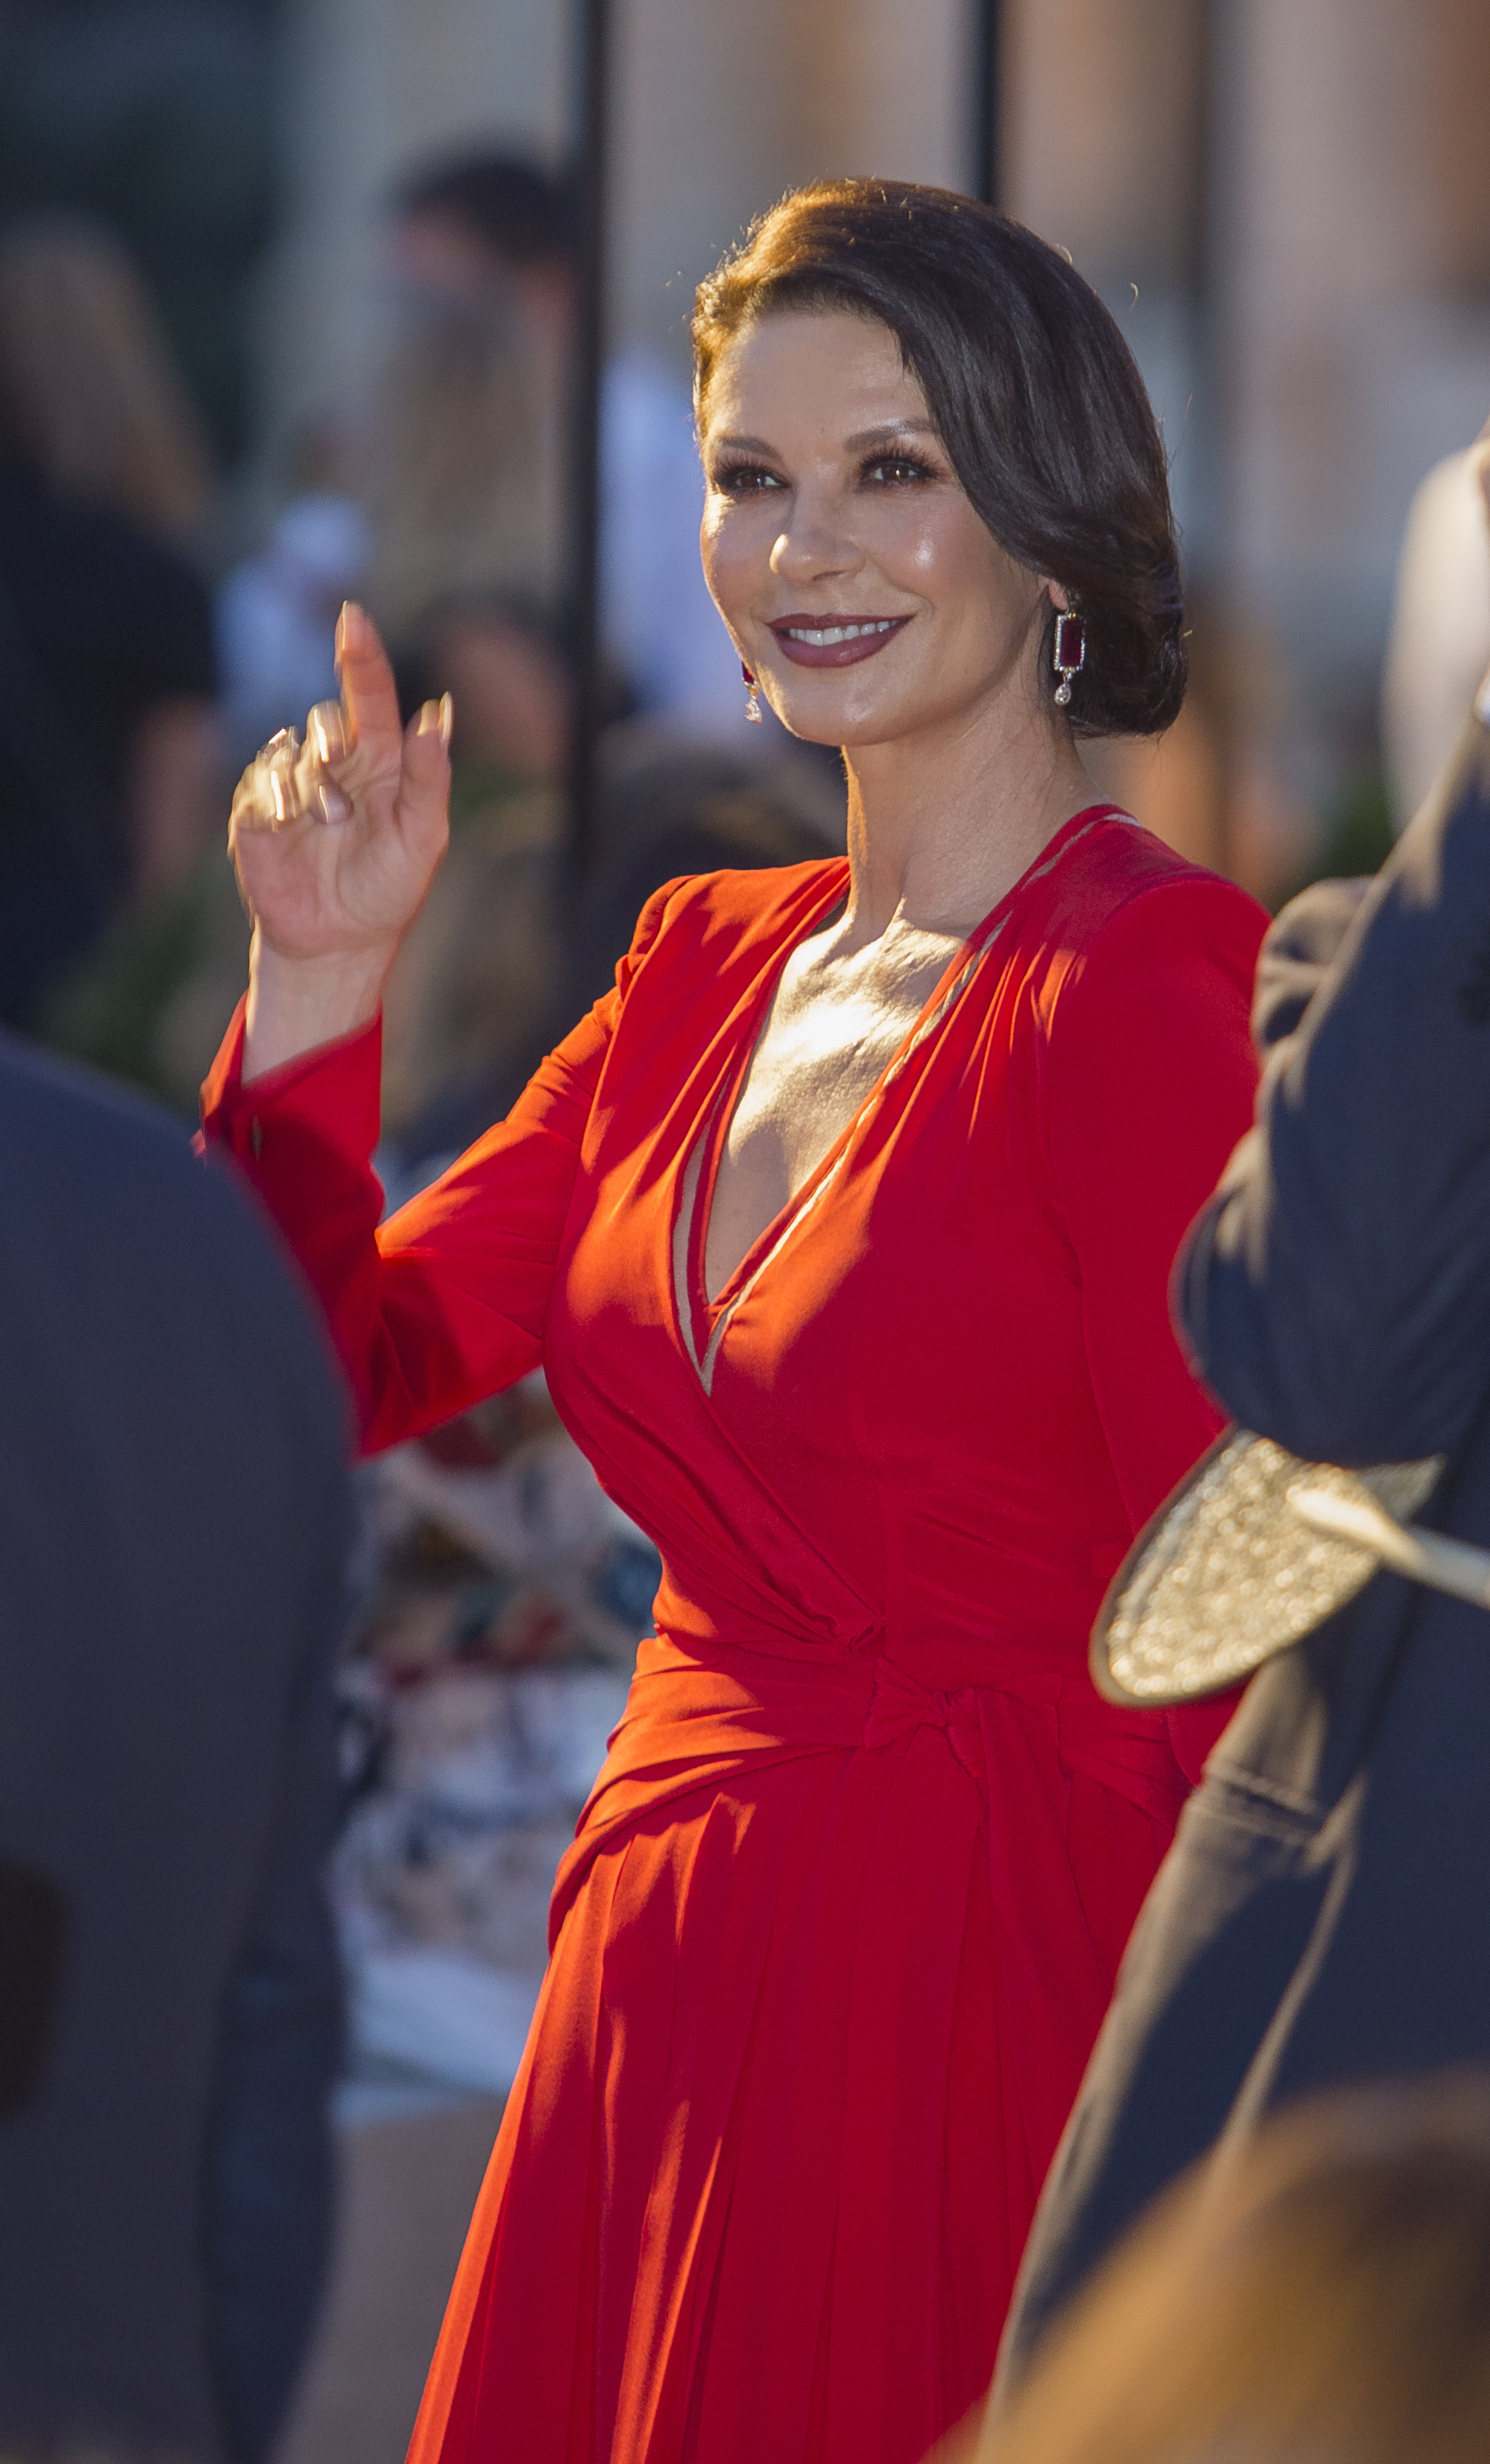 Actress Catherine Zeta-Jones waves before the start of Fendi's Fall-Winter 2019-2020 show 'The dawn of Romanity' during a couture runaway show in front of Rome's Colosseum,Thursday, Jul. 4, 2019. The show is meant to pay homage to fashion designer Karl Lagerfeld who passed away early this year at 85, ending his 54-year tenure with the luxury brand. (AP Photo/Domenico Stinellis)